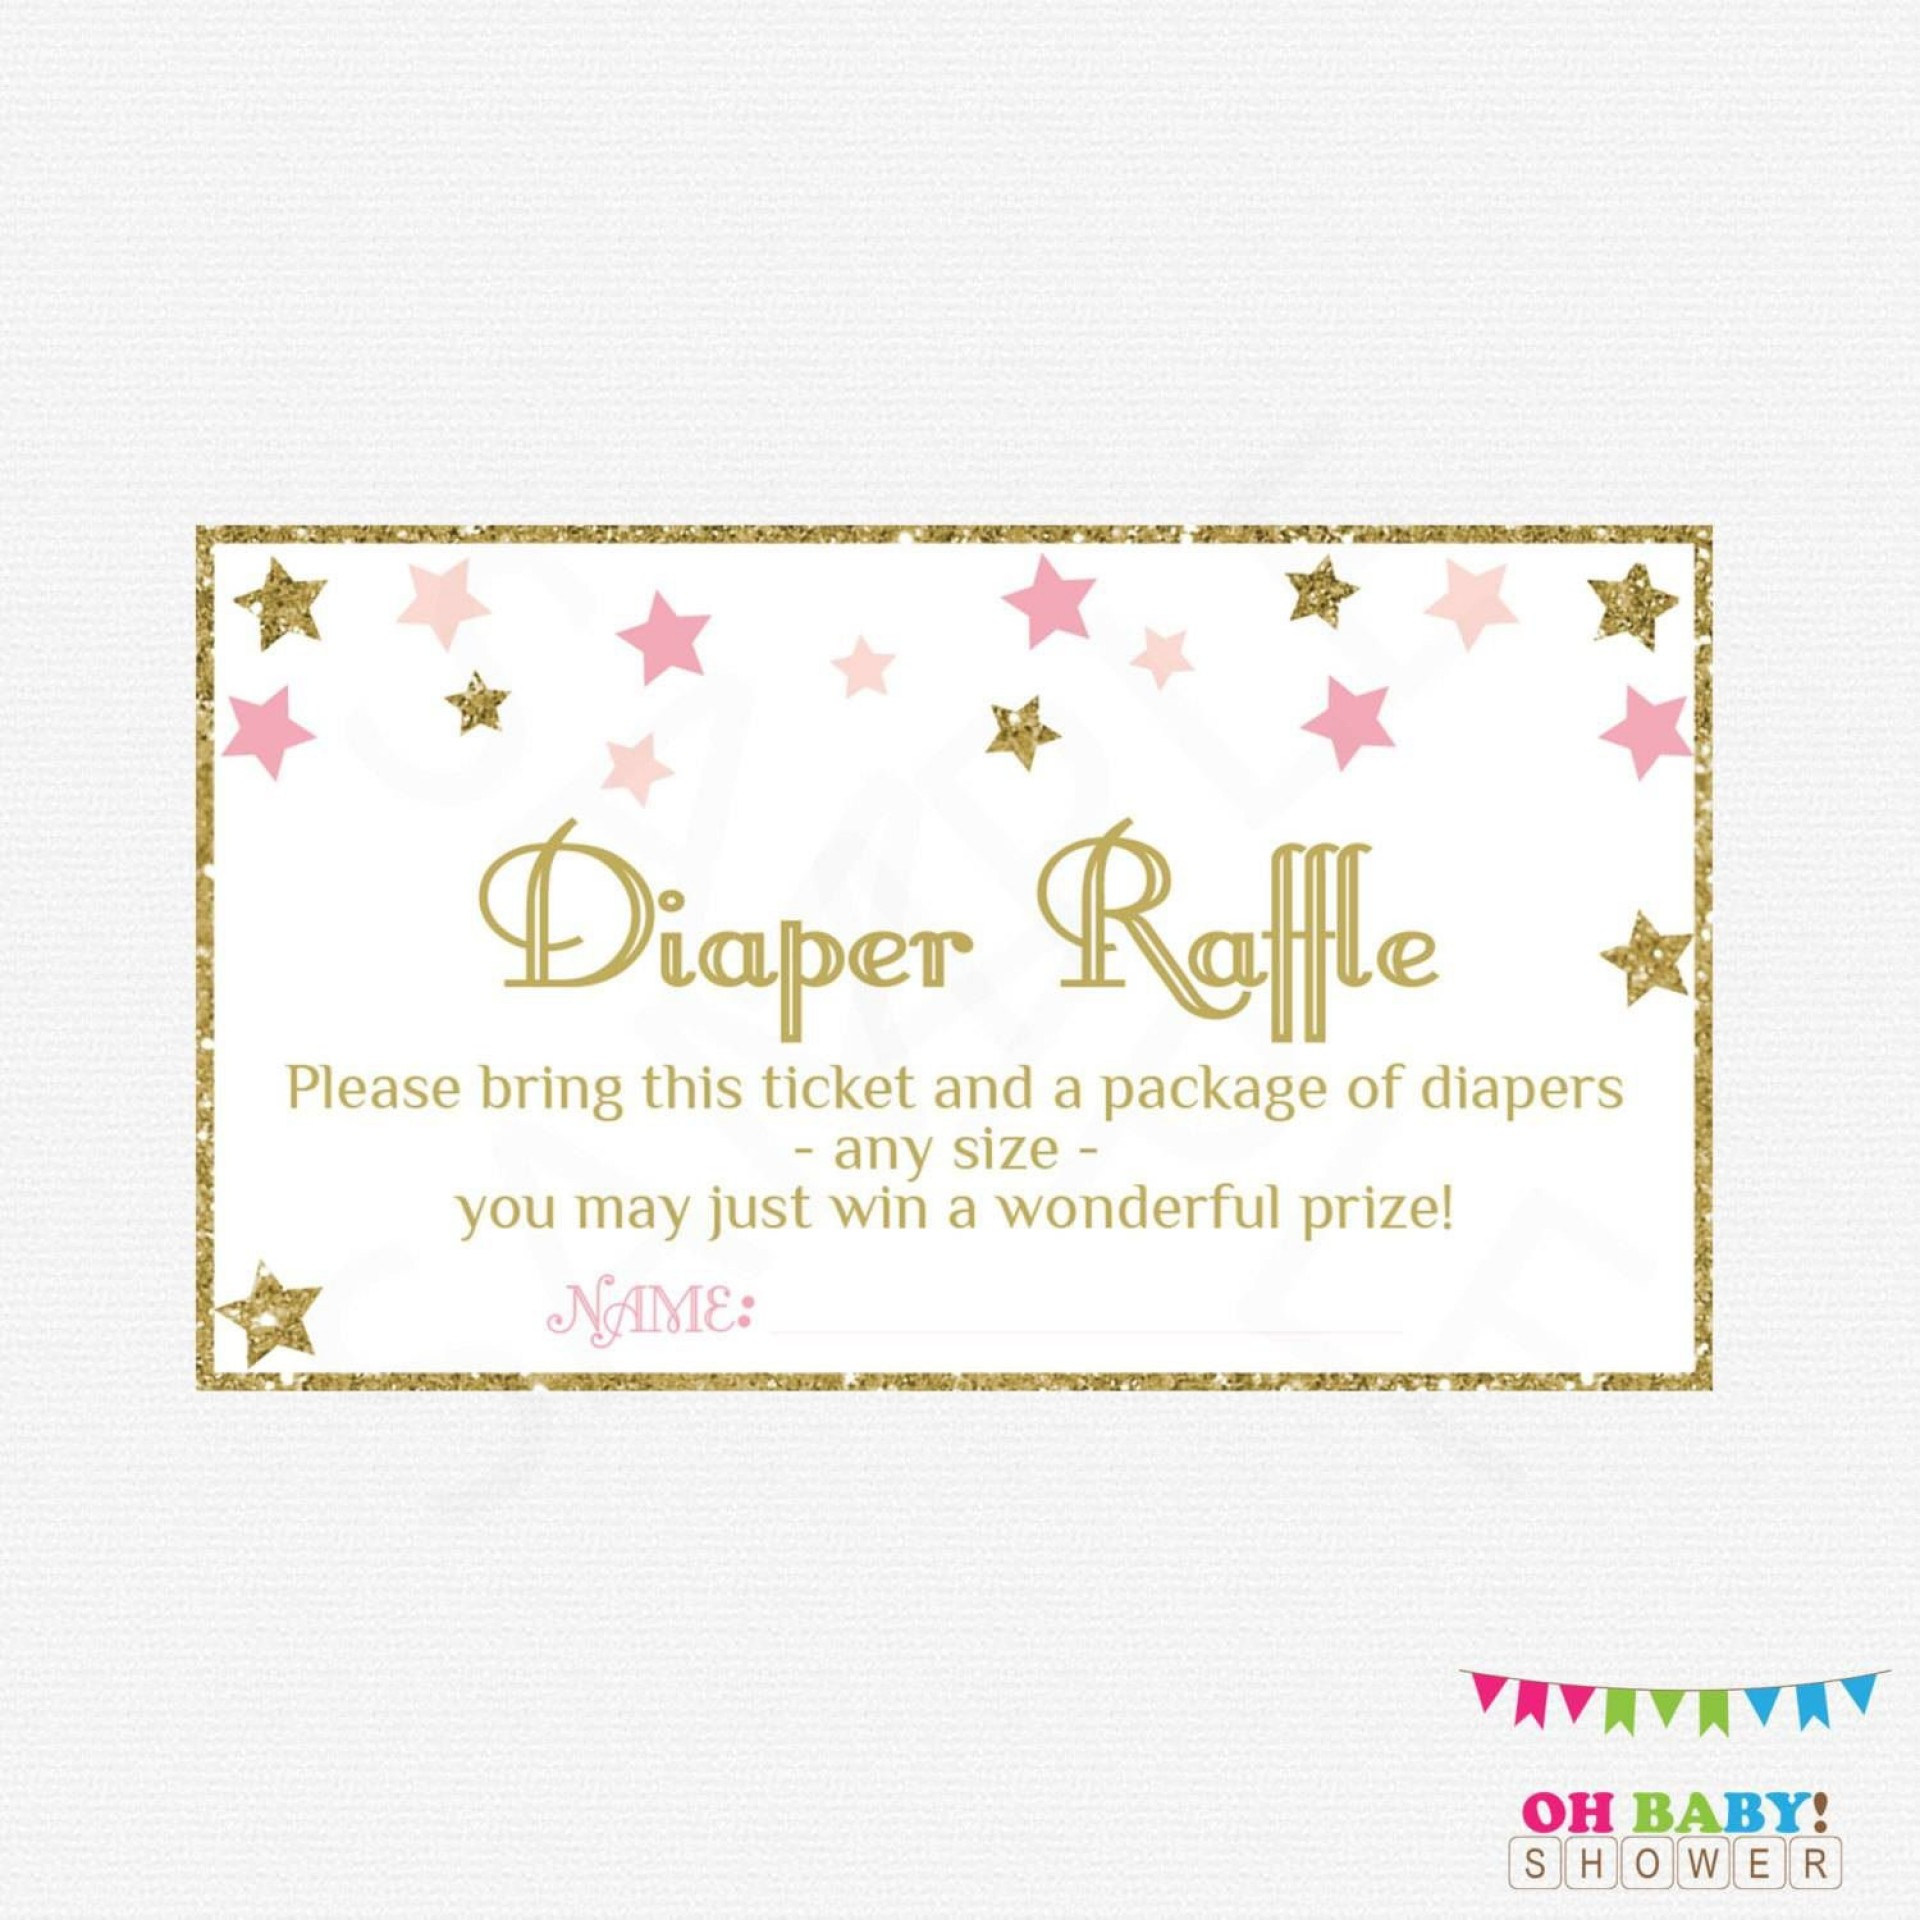 005 Astounding Diaper Raffle Ticket Template Highest Quality  Free Printable Download1920